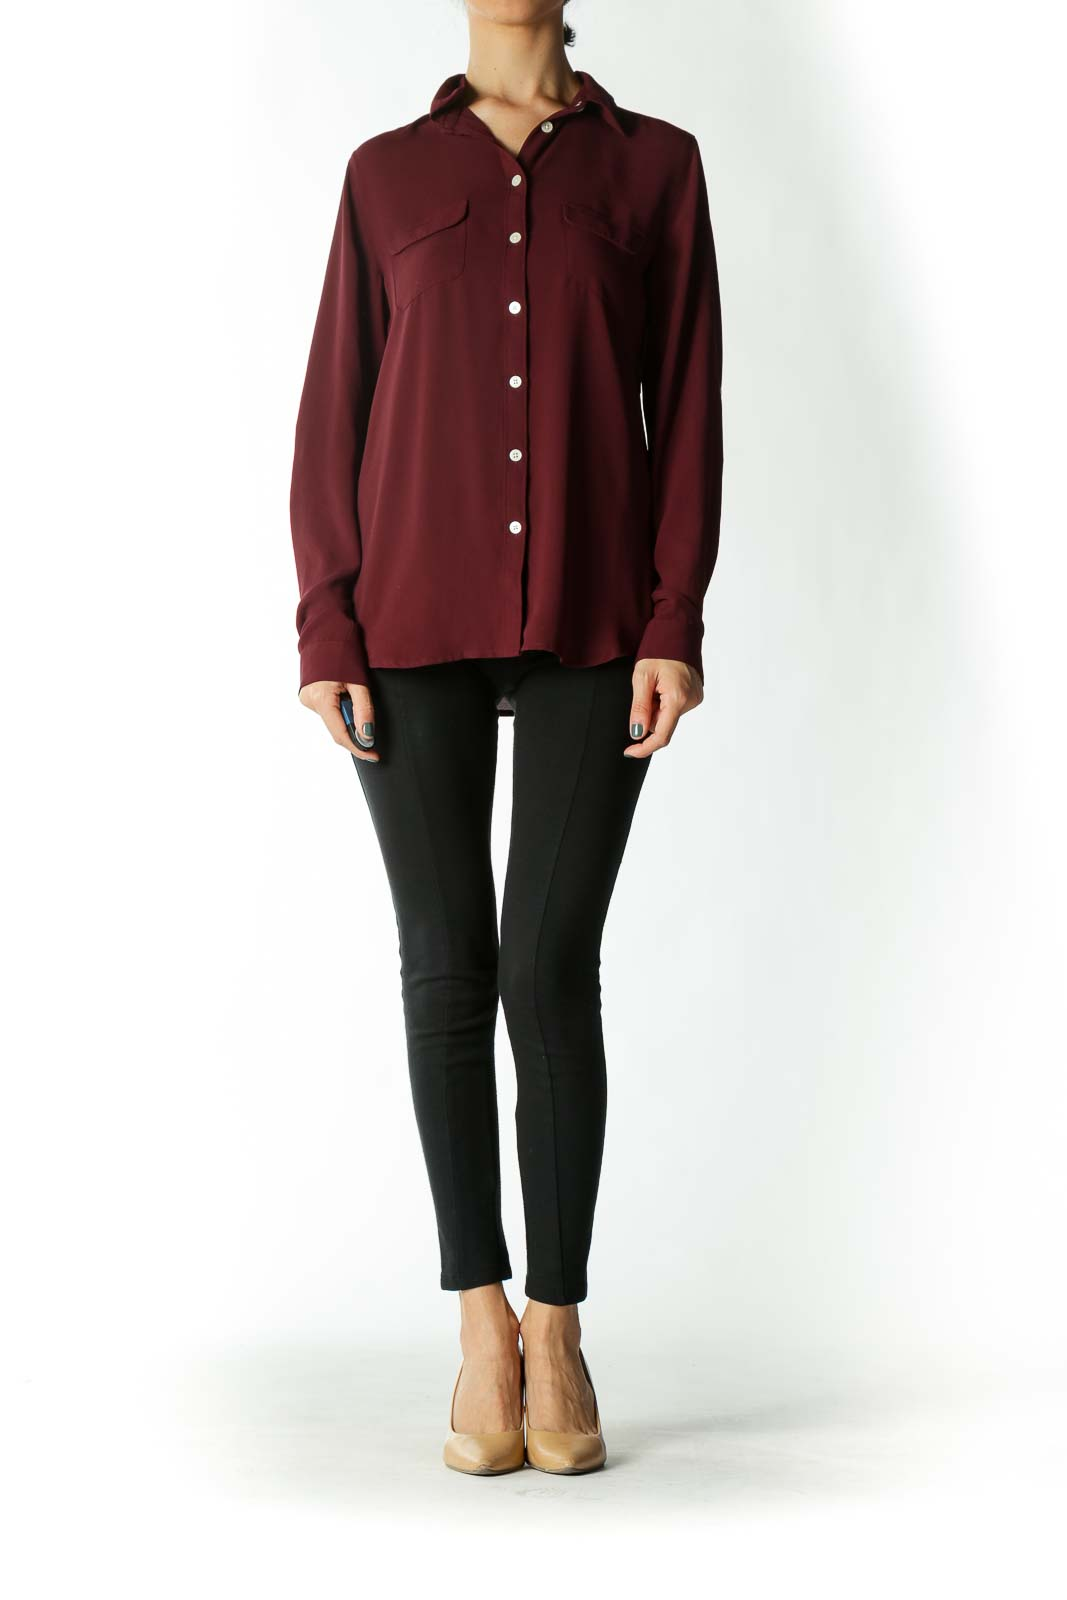 Burgundy Button-Down Blouse With White Buttons